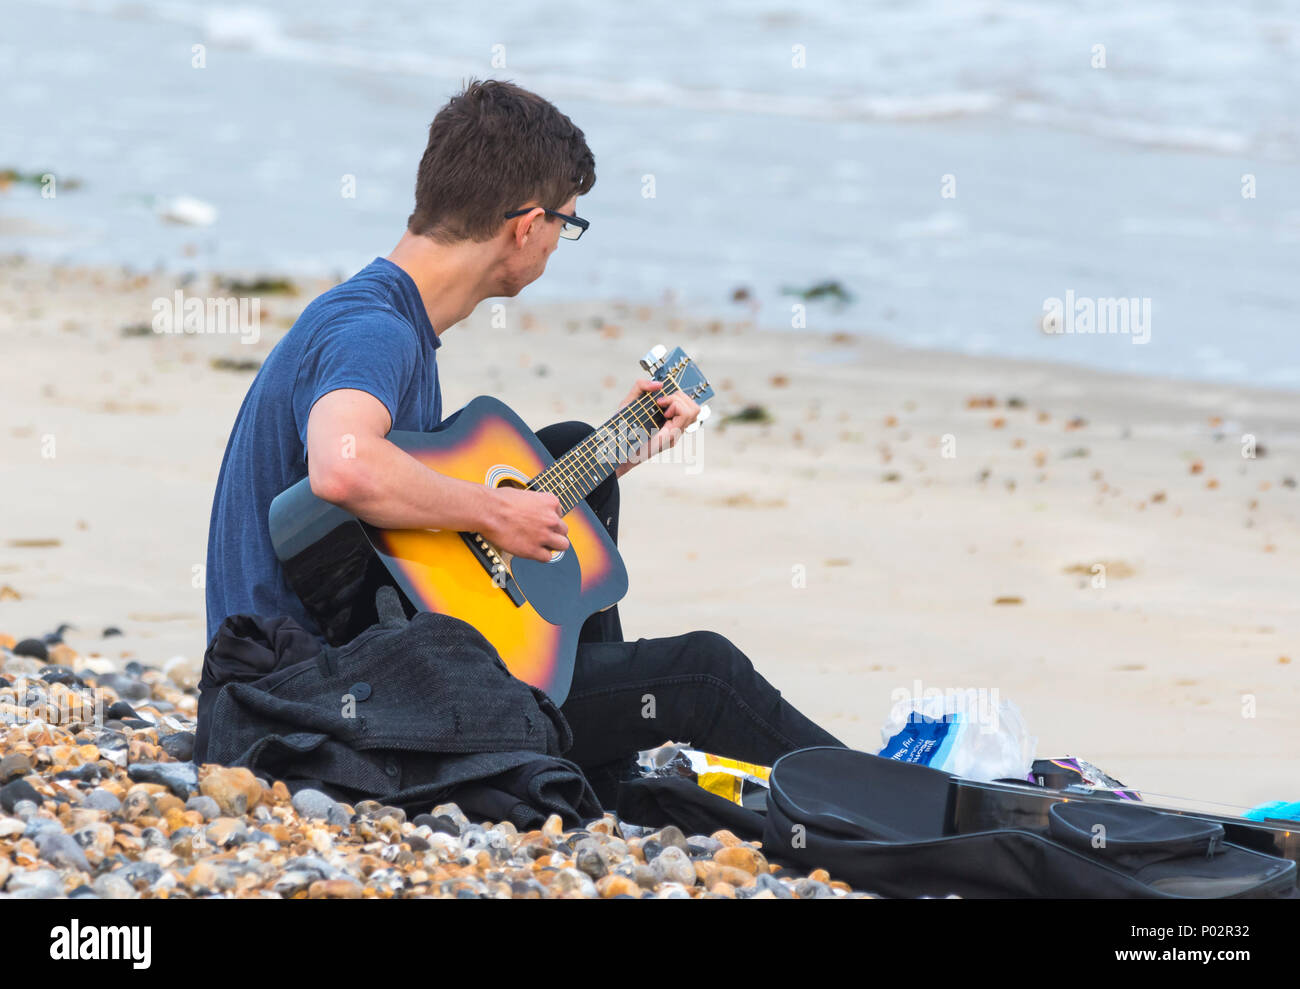 Young man sitting on a sandy beach playing a guitar, in the UK. - Stock Image